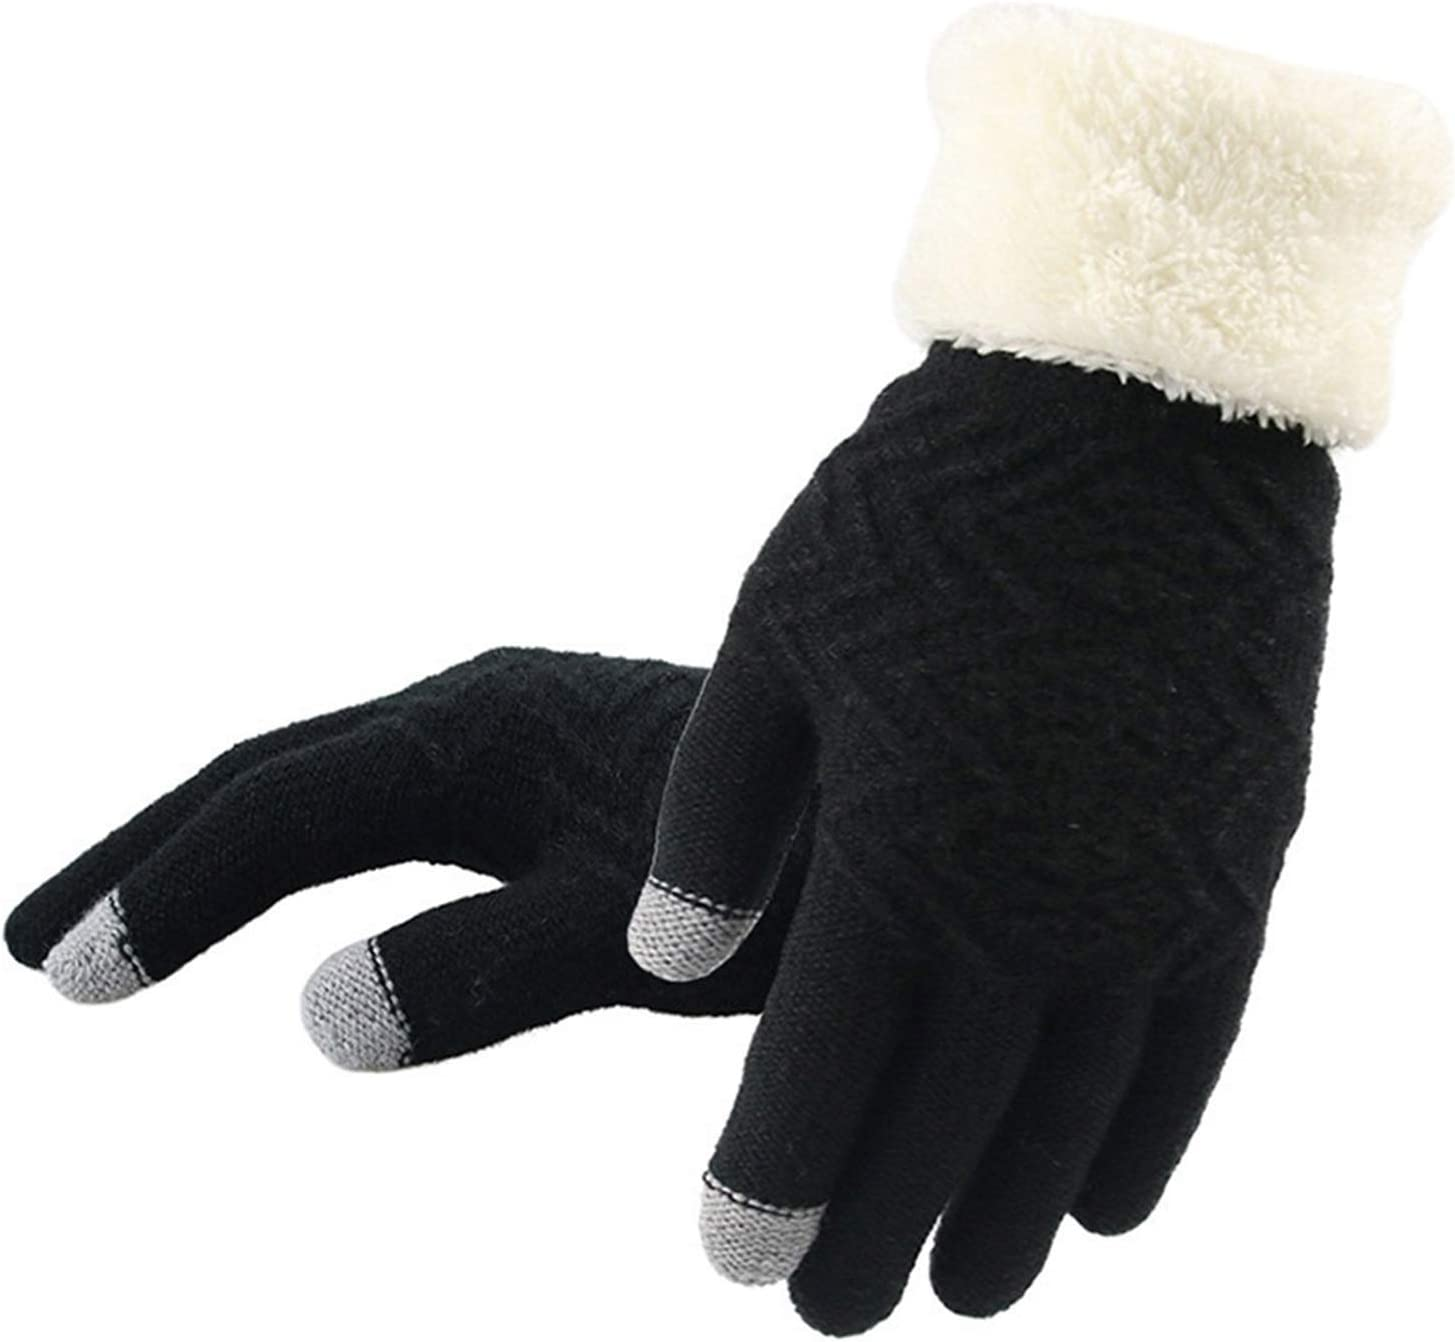 JBIVWW Women's Knitted Gloves Fashion European and American Style Winter Women's Gloves (Color : Black, Gloves Size : One Size)